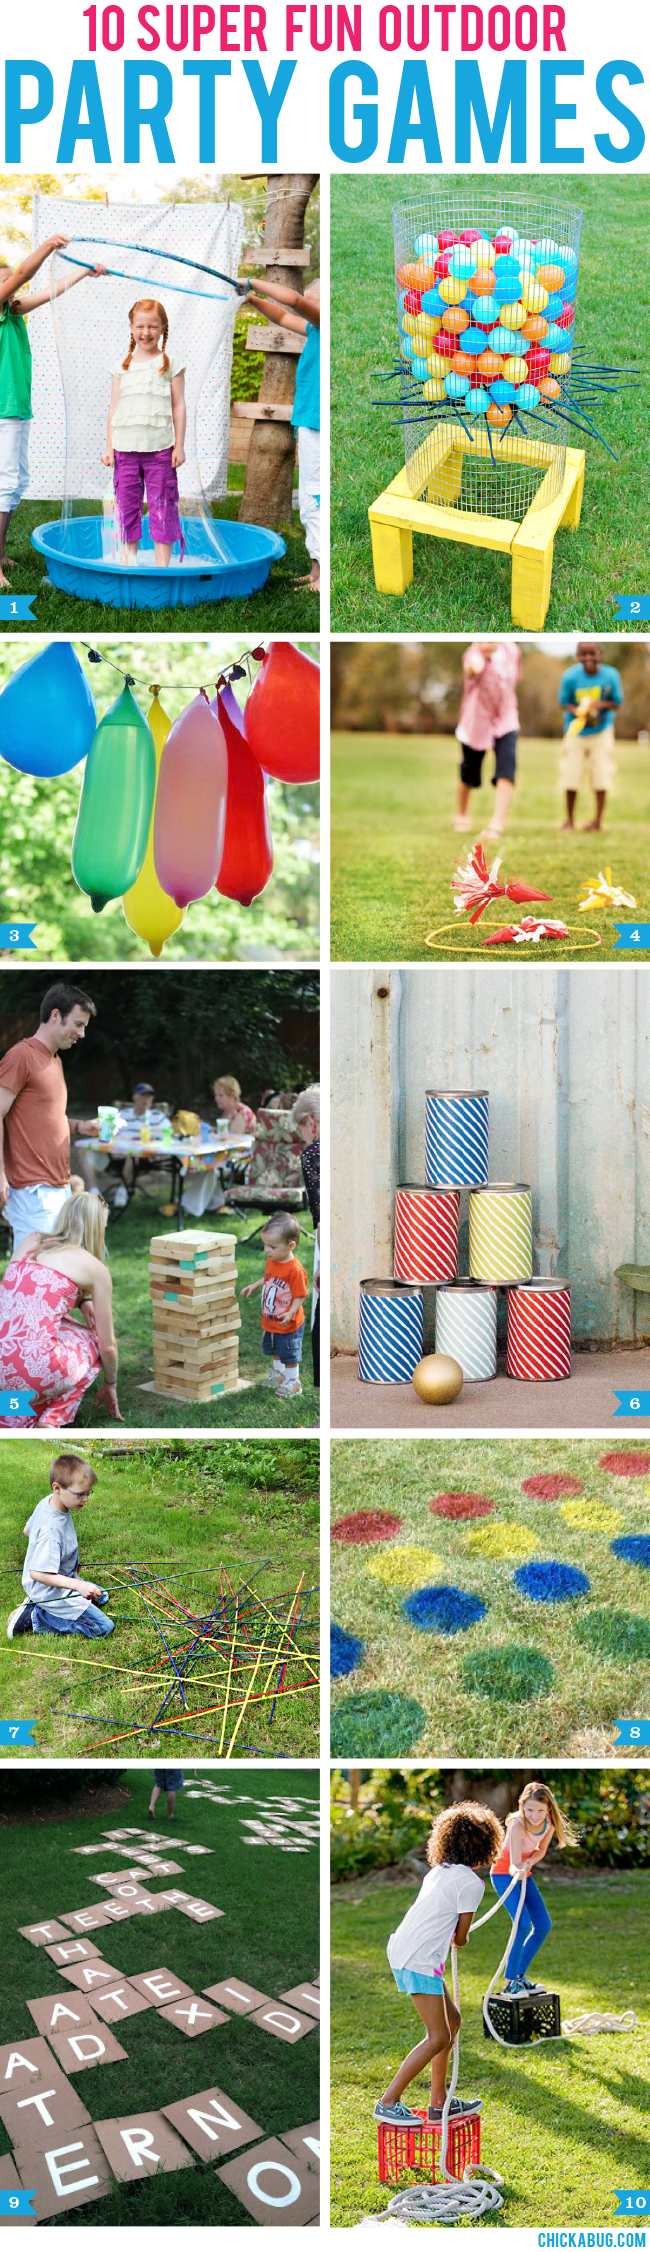 10 Super Fun Outdoor Party Games Chickabug